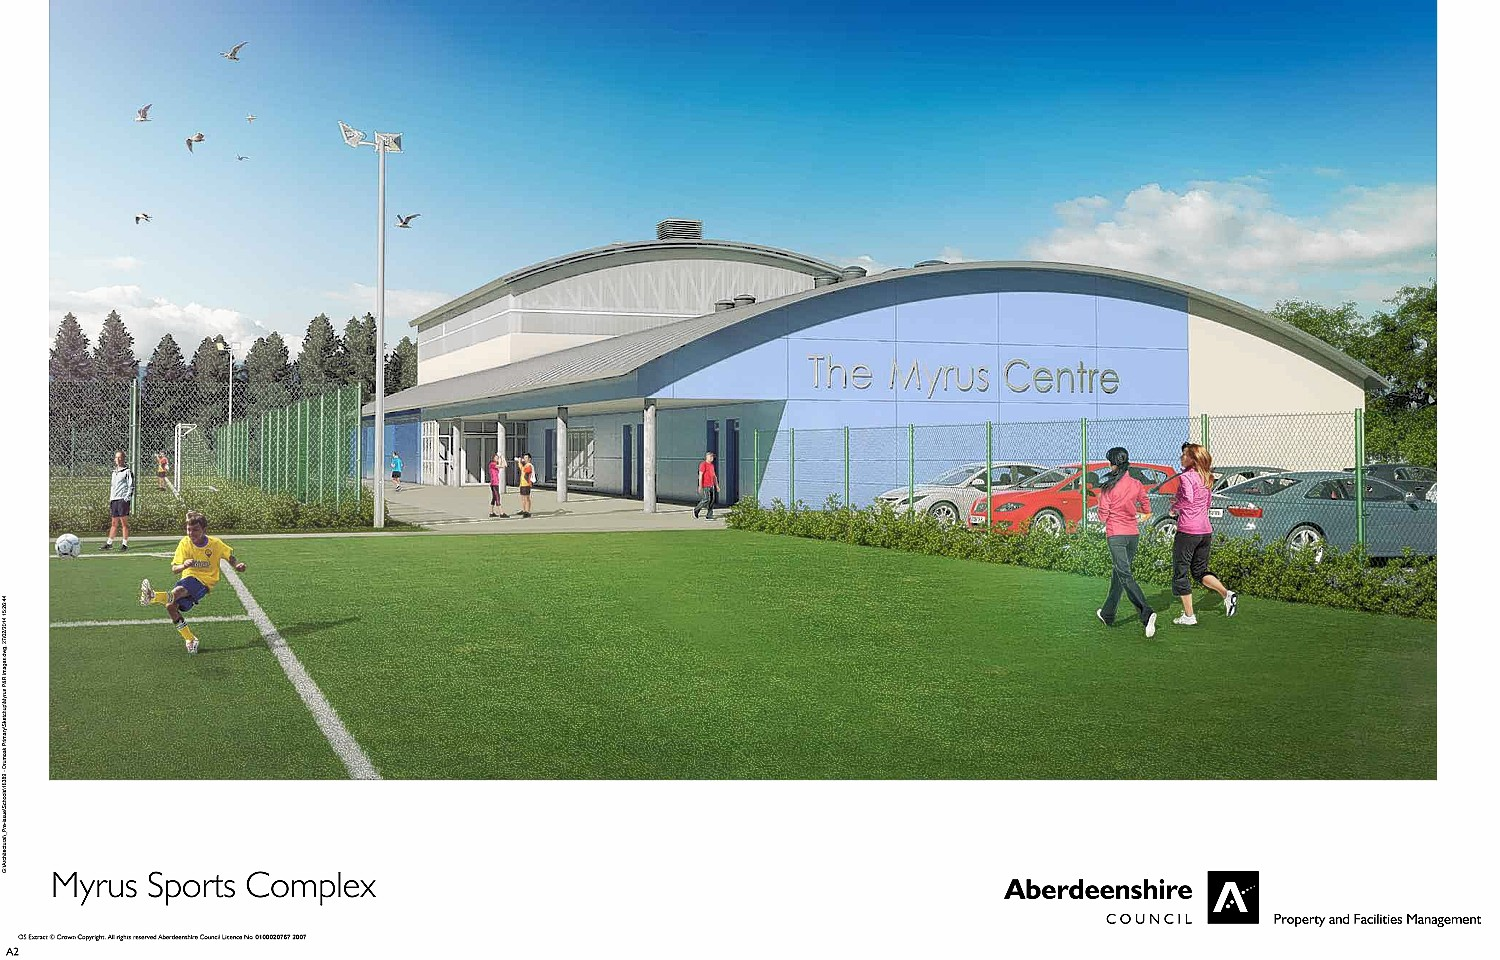 Artist impressions of the planned Myrus Sports Complex